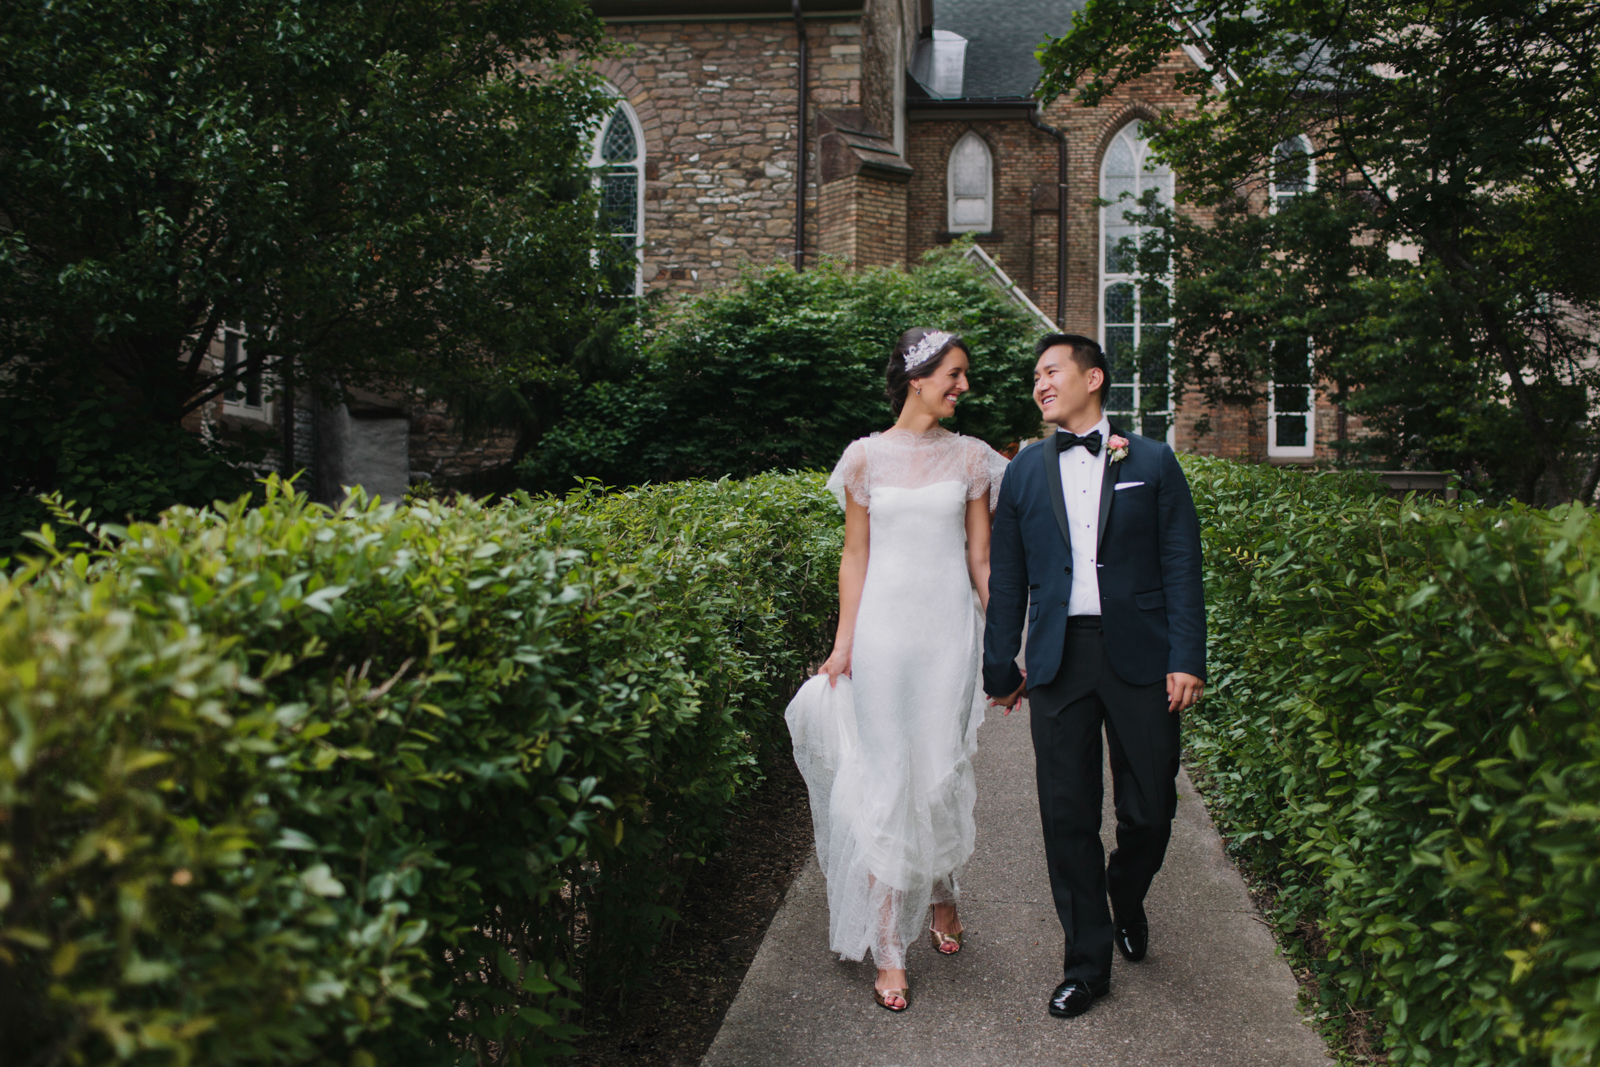 Fountain-Street-Church-and-Urban-Institute-of-Contemporary-Arts-Wedding-Kirstin-and-Khoi-013.jpg